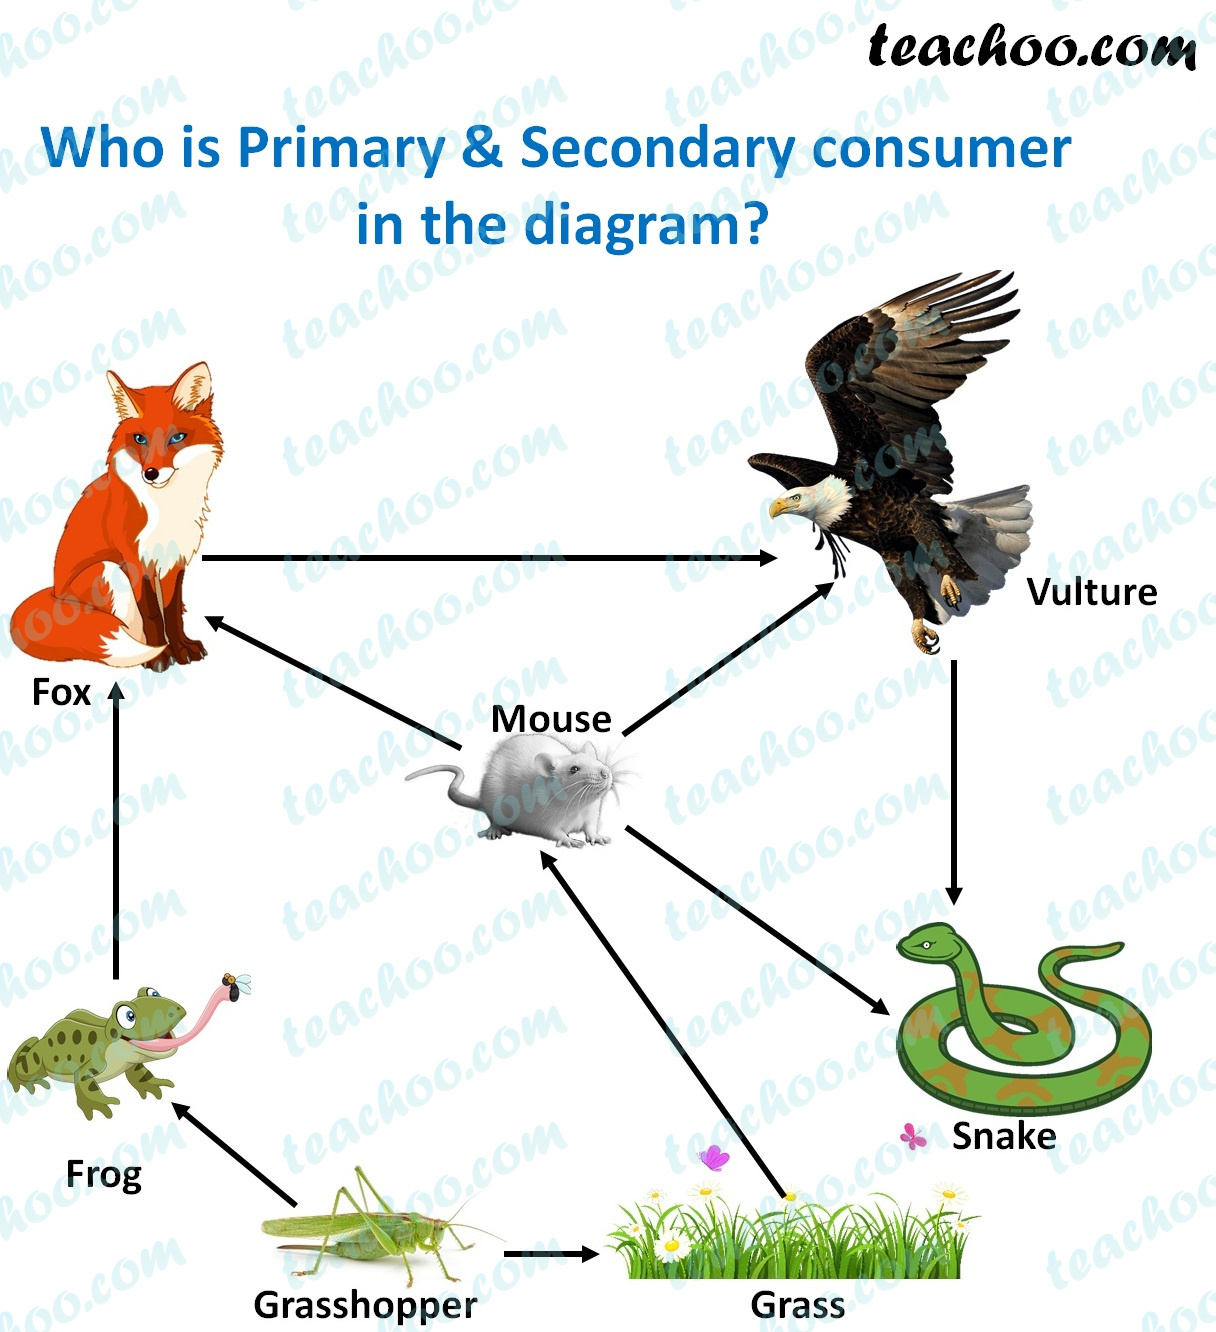 who-are-primary-&-secondary-consumers-in-this-diagram---teachoo.jpg